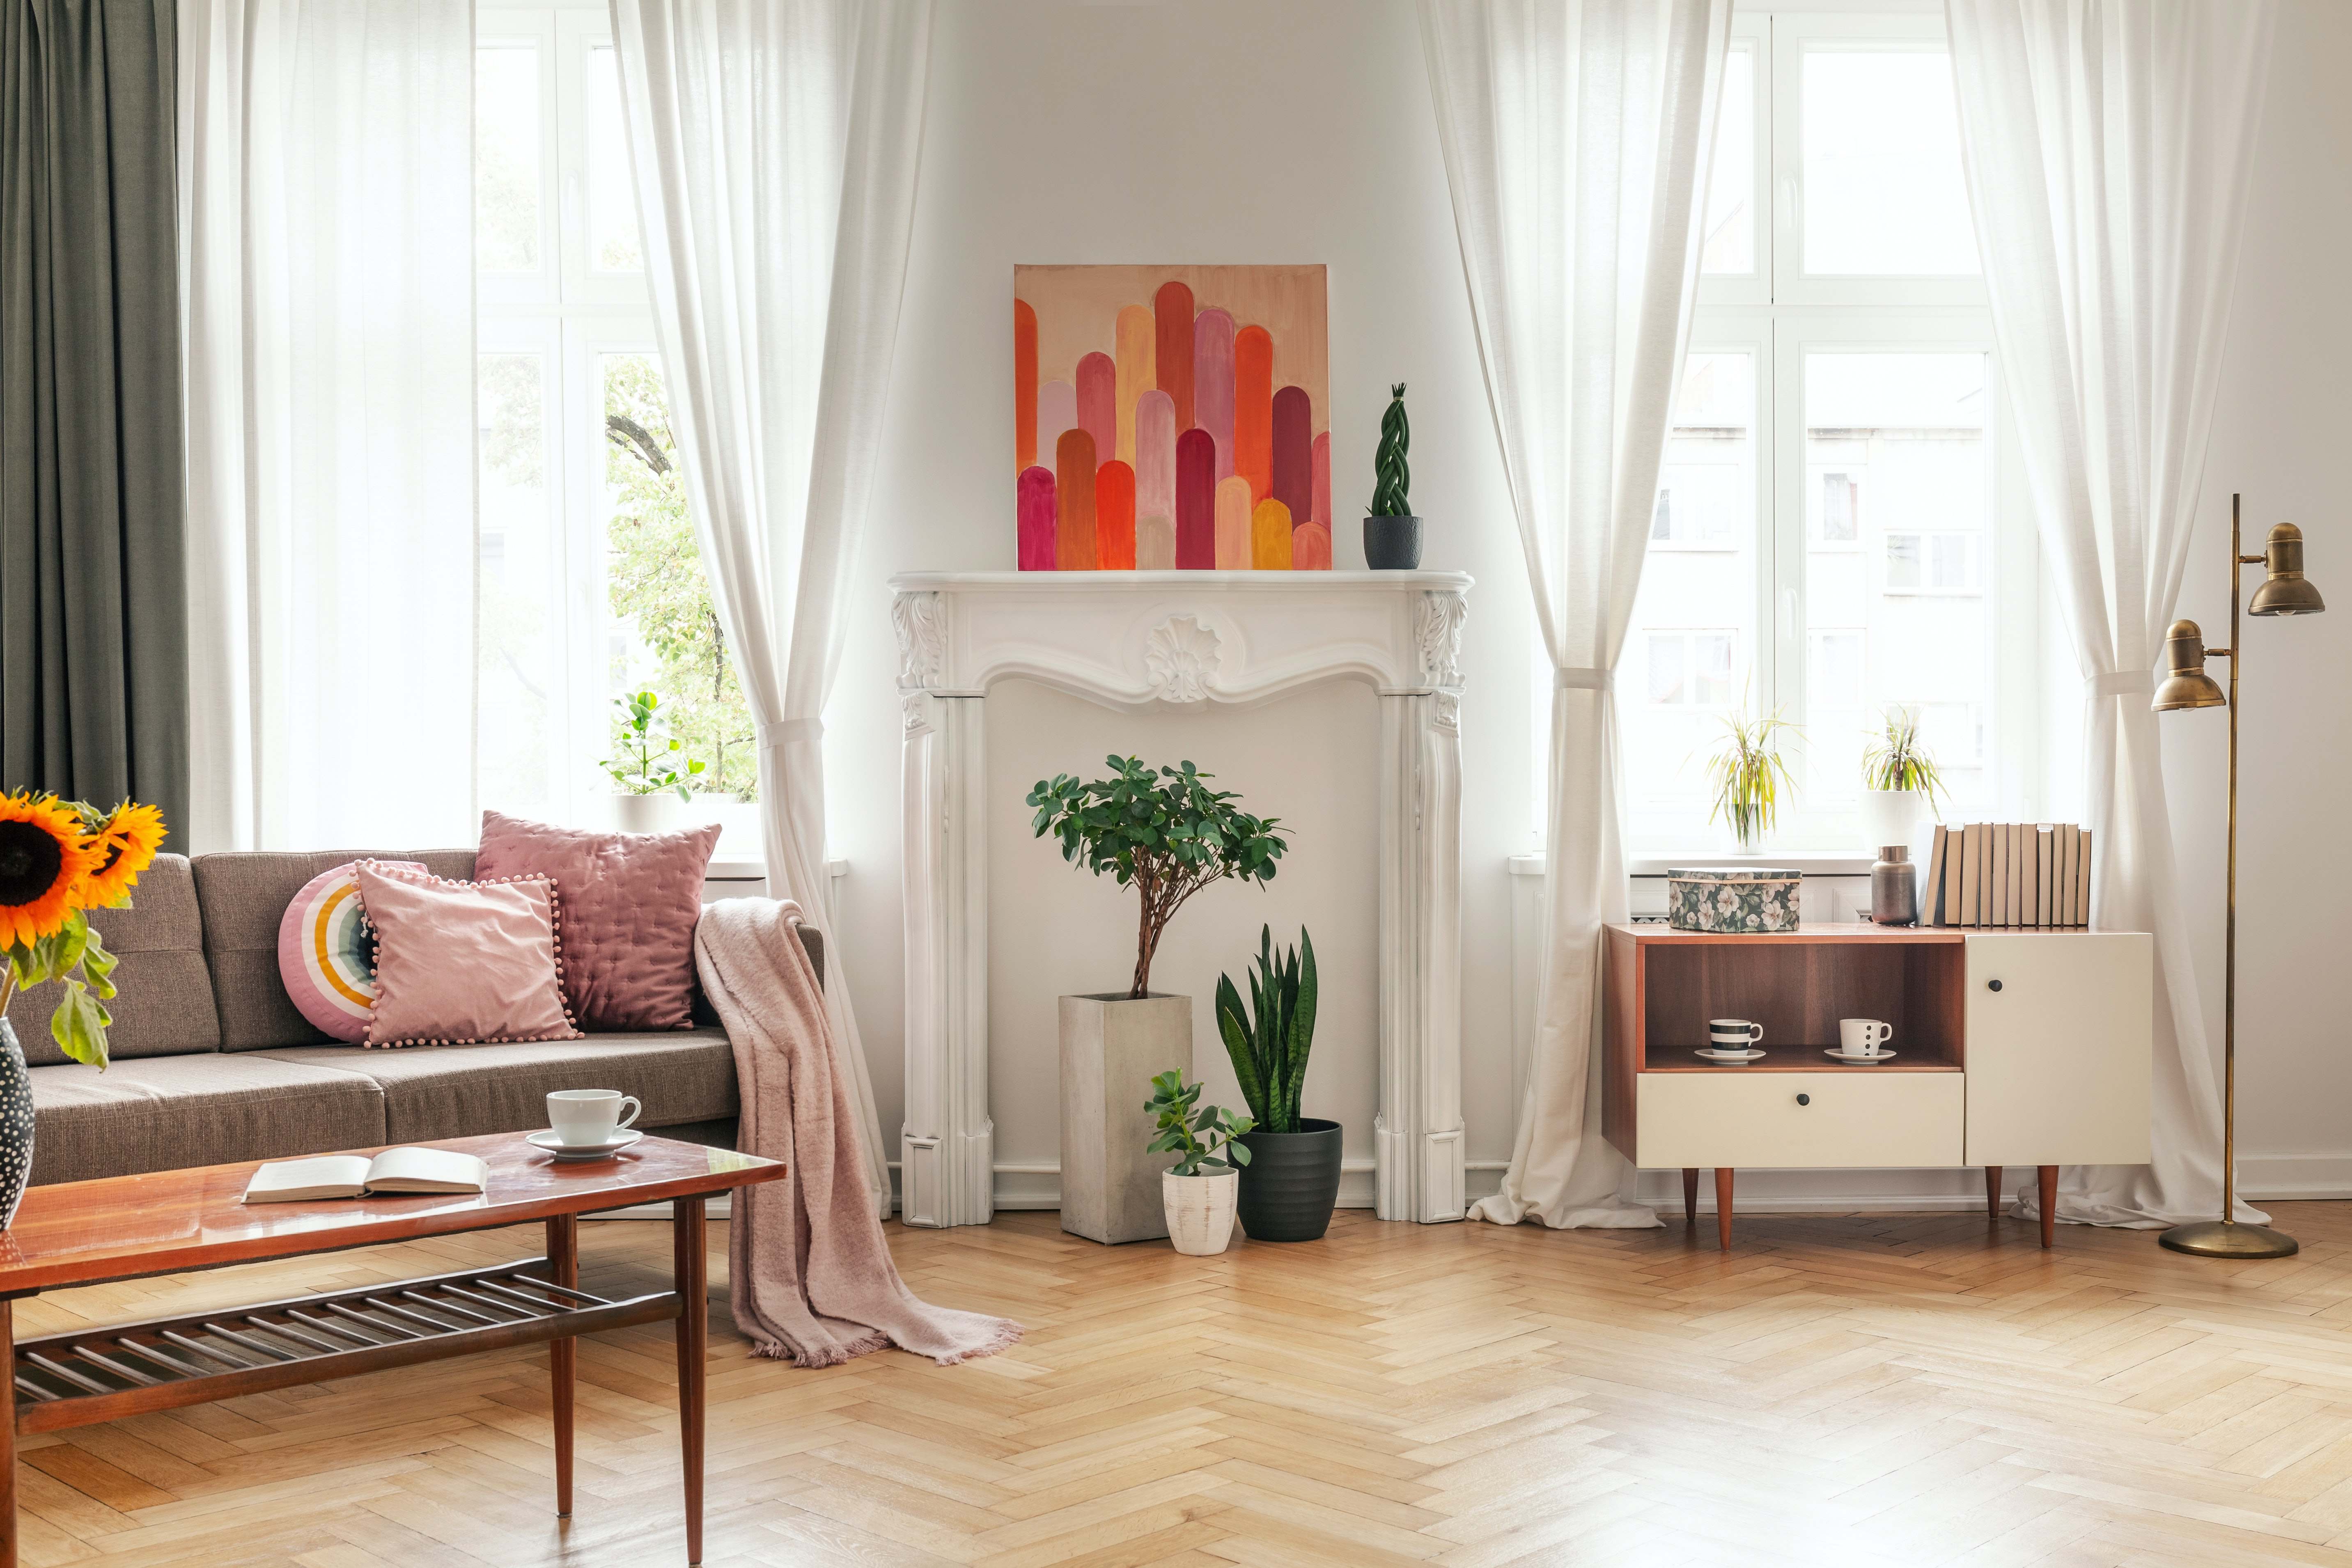 Home Decor Based On Personality Traits According To Design